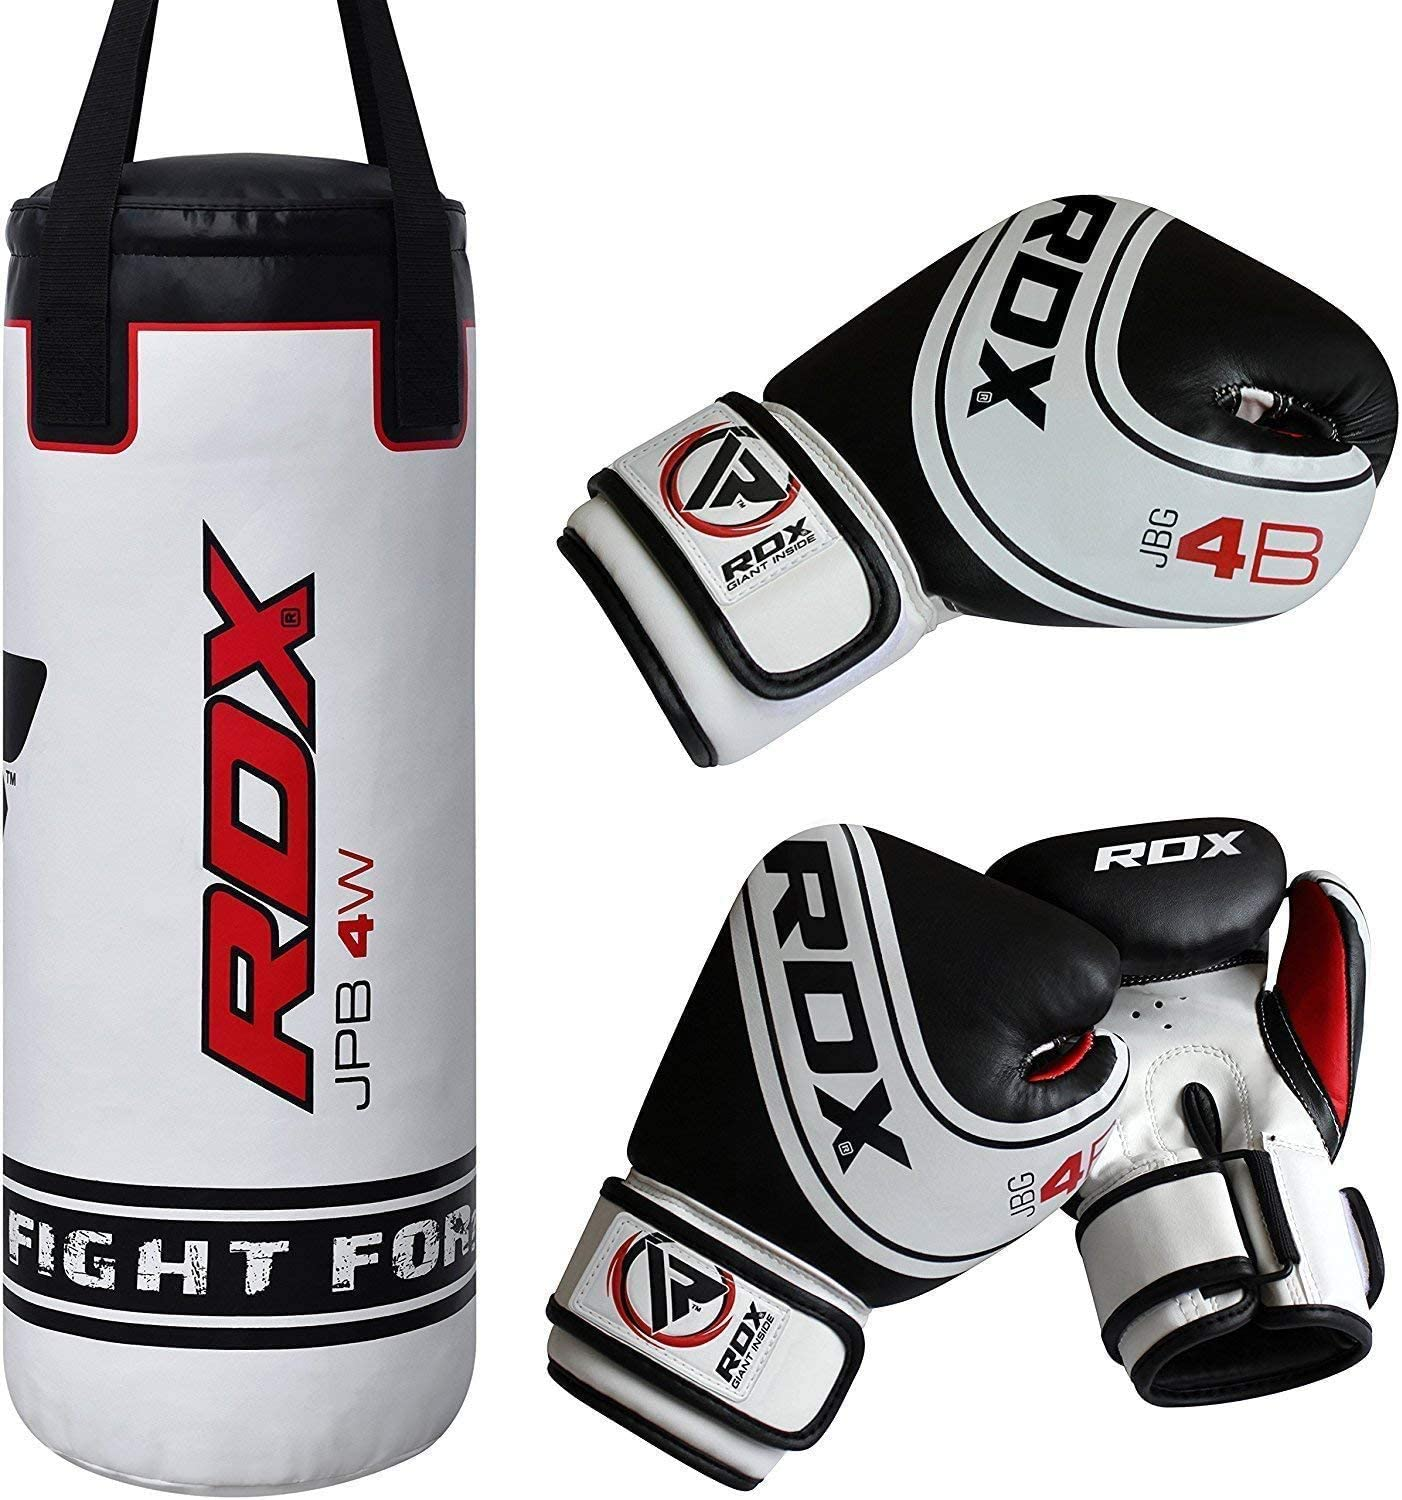 RDX Kids Punching Bag with boxing gloves